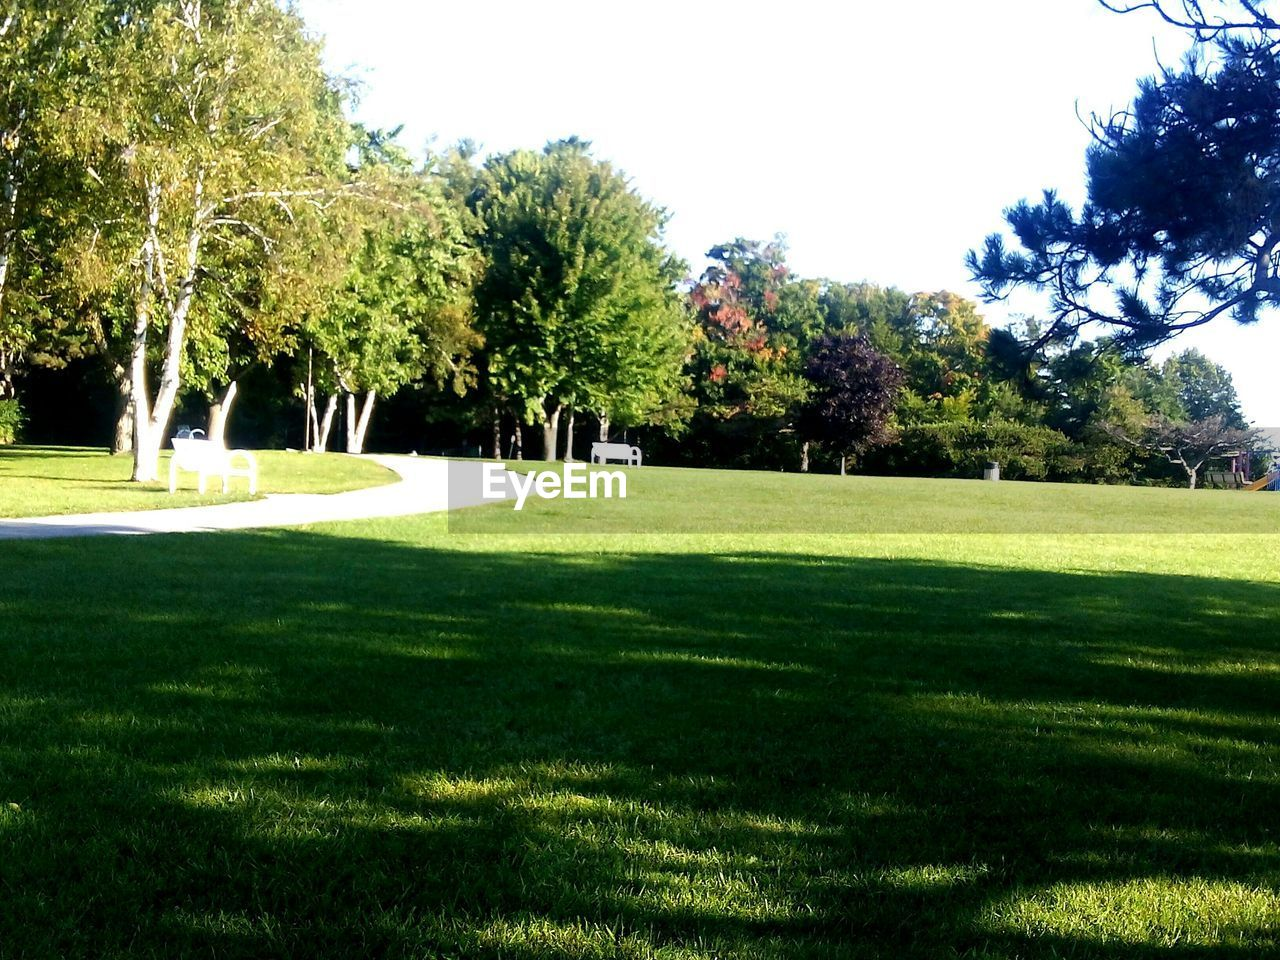 tree, grass, golf, golf course, sunlight, growth, green - golf course, green color, nature, beauty in nature, lawn, shadow, day, tranquility, sport, no people, outdoors, scenics, clear sky, sky, golfer